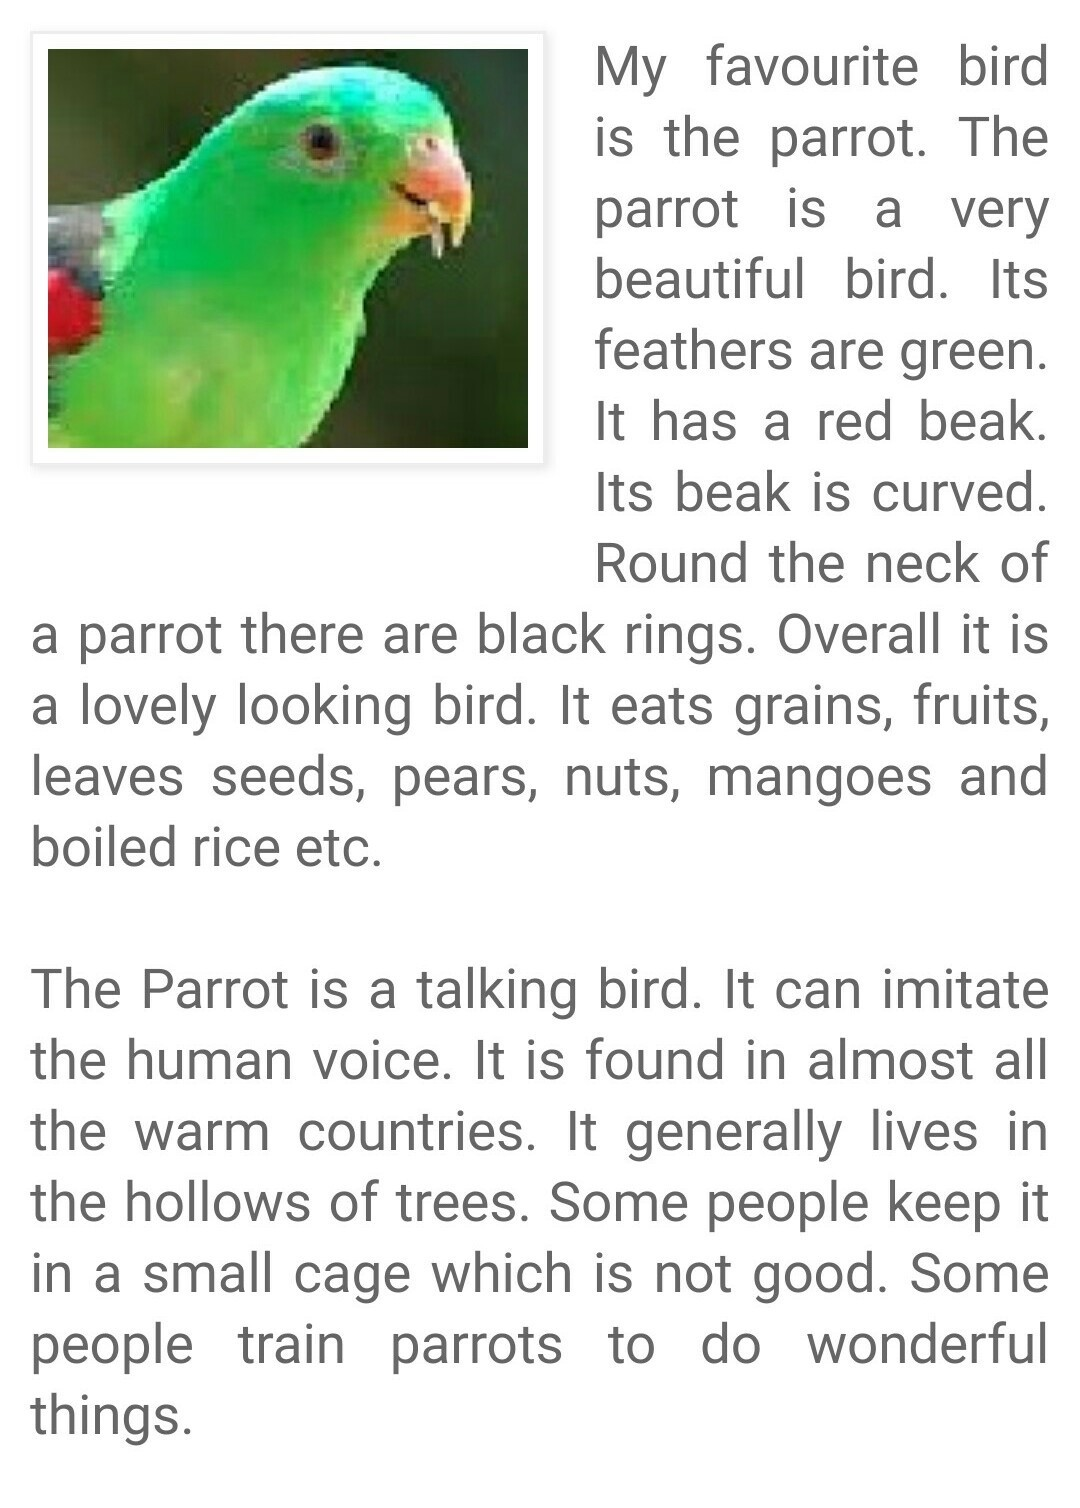 essay on parrot in bengali